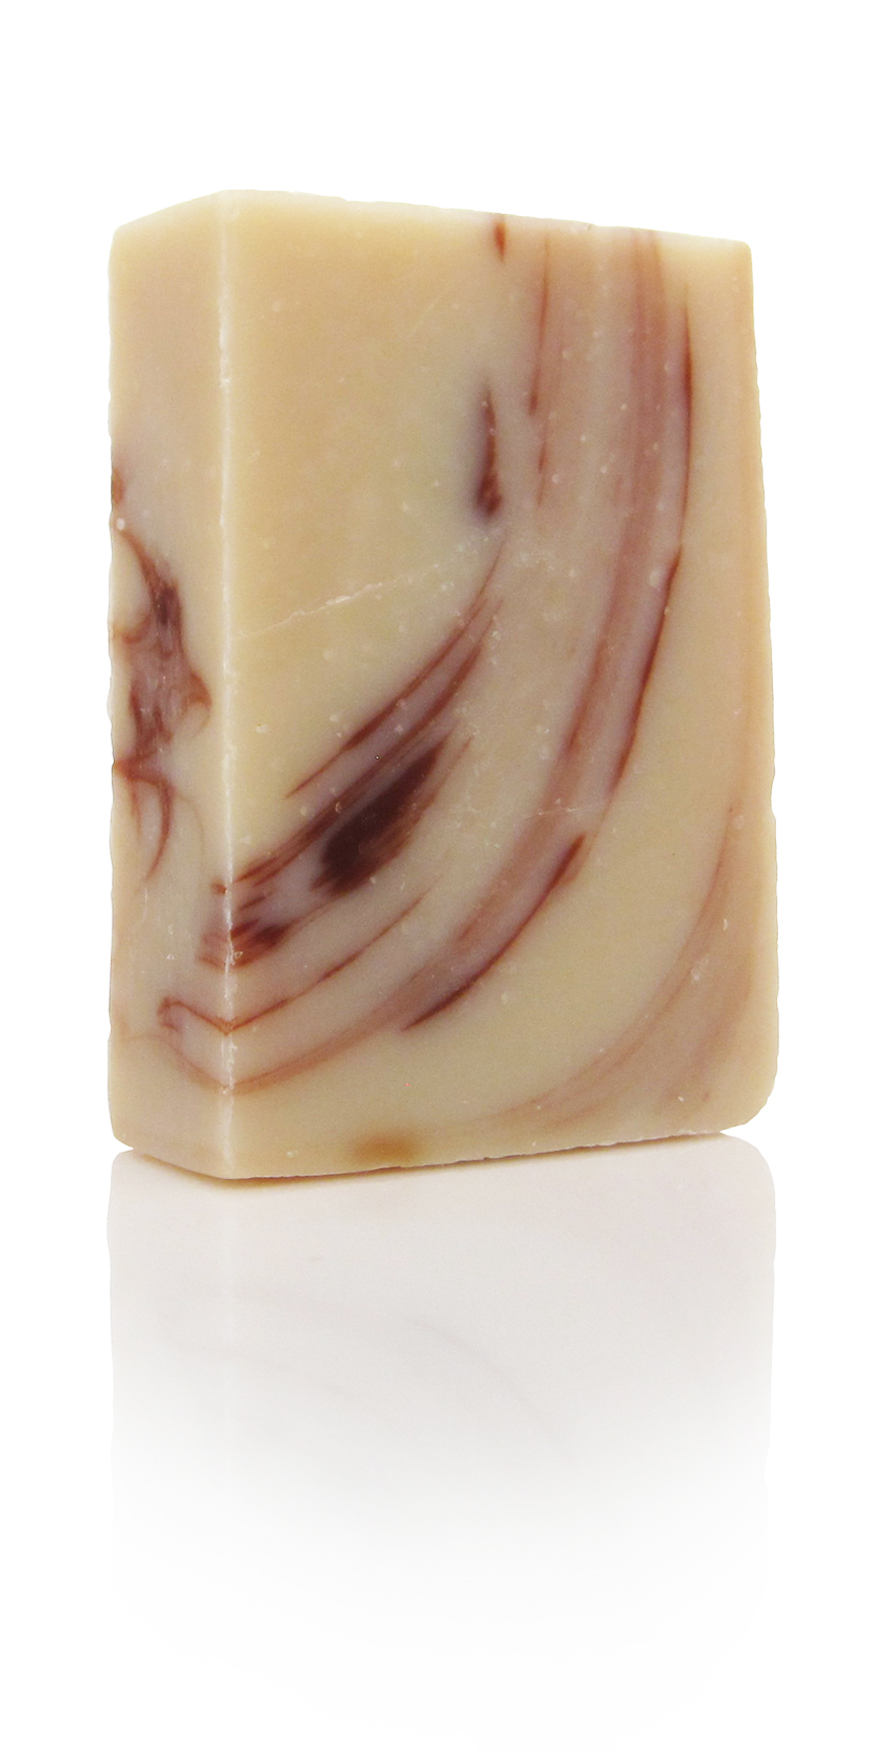 cacao soap with Lemon, cinnamon leaf, patchouli, sweet orange